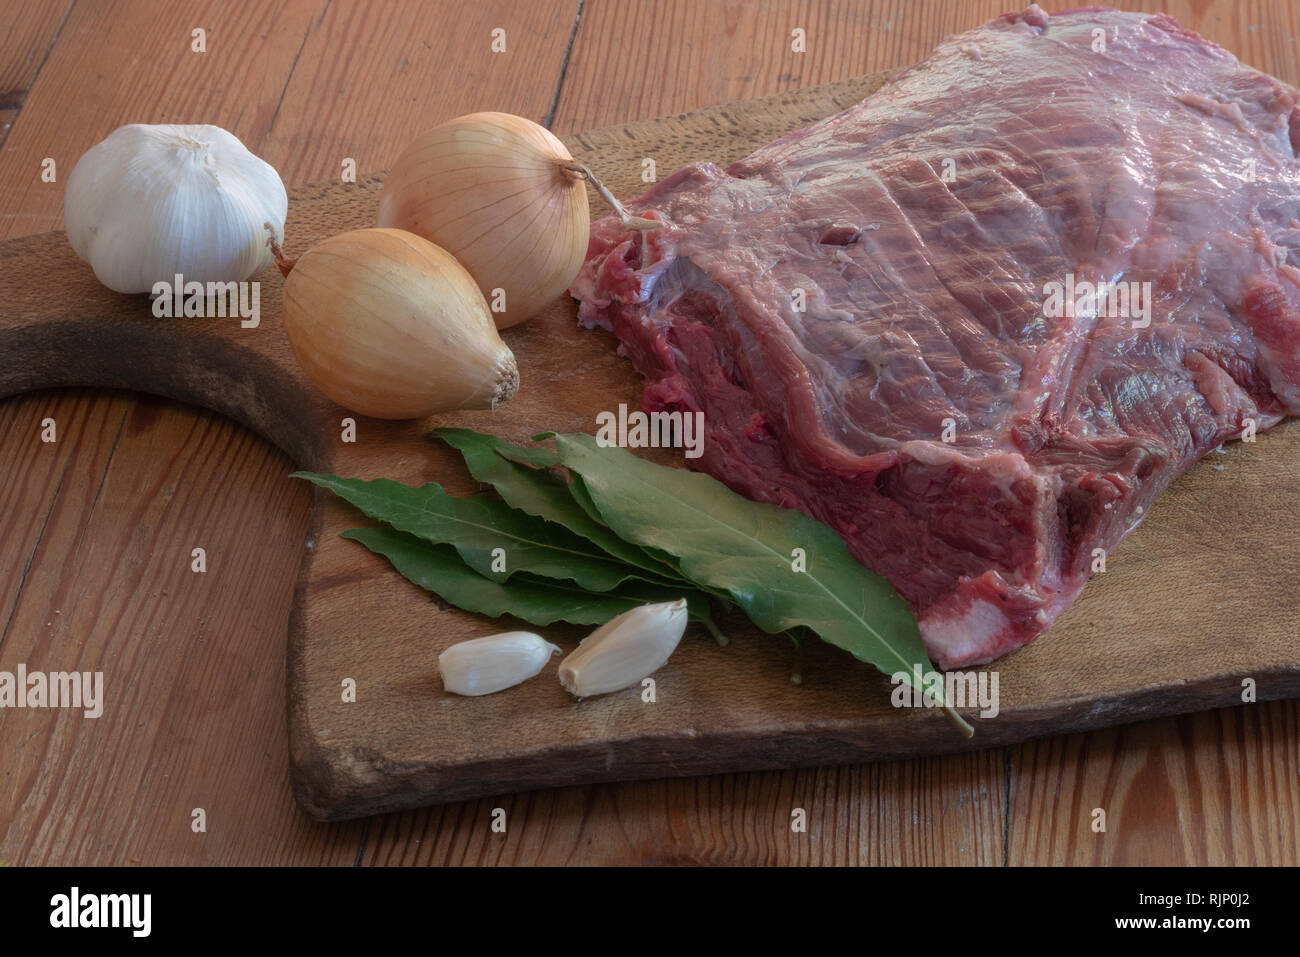 Carne argentina, argentine meat Stock Photo